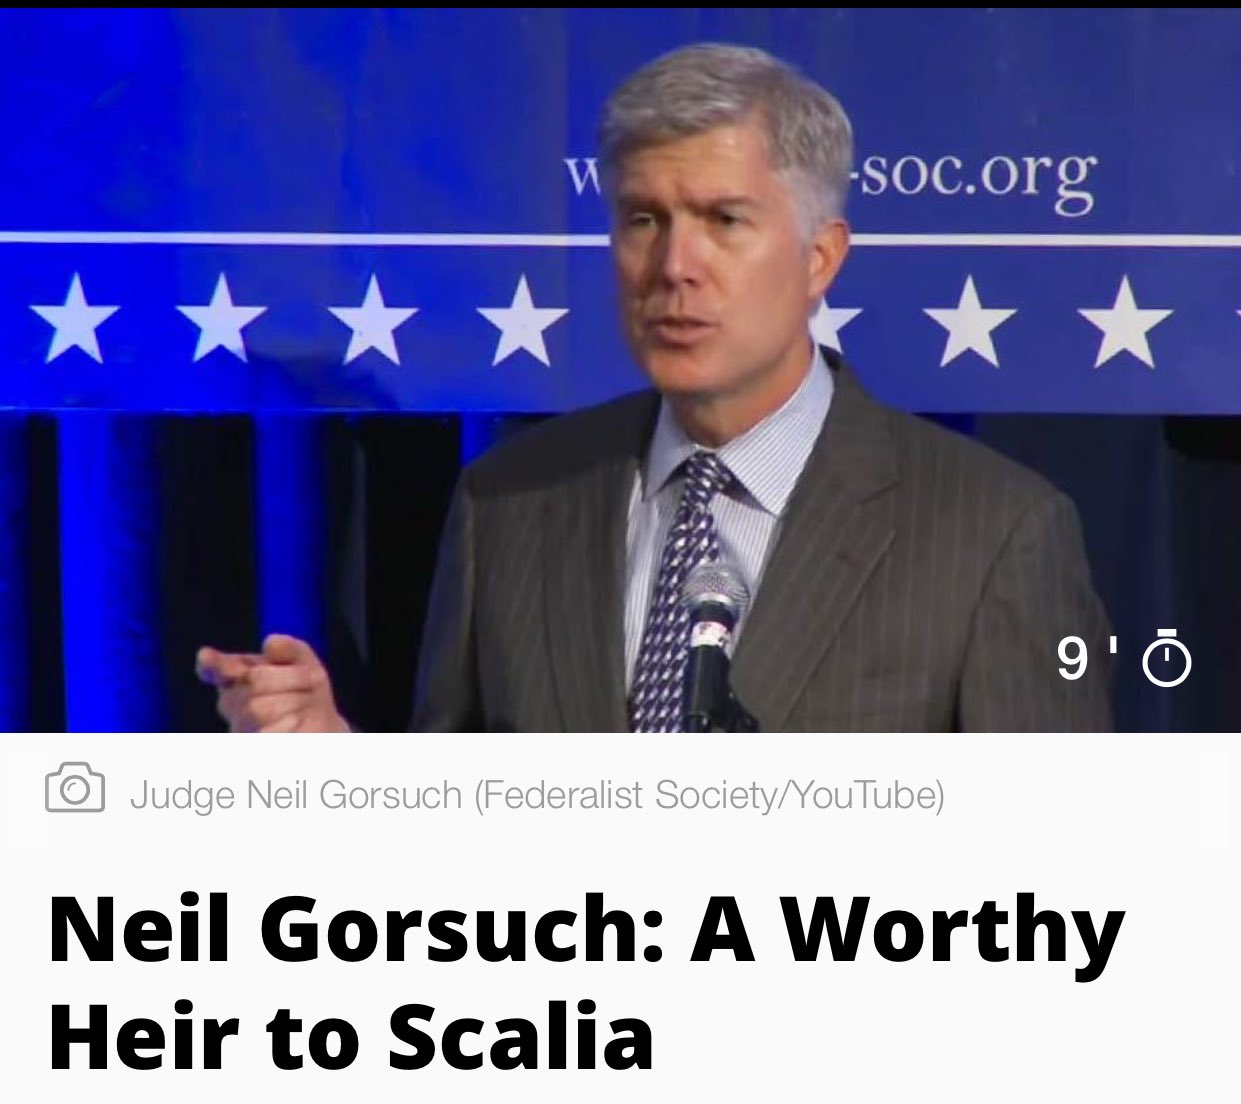 Trump announces Judge Neil Gorsuch as #SupremeCourt nominee. 'A worthy heir to Scalia' Very respected judge. #SCOTUS https://t.co/Kn7631kOt0